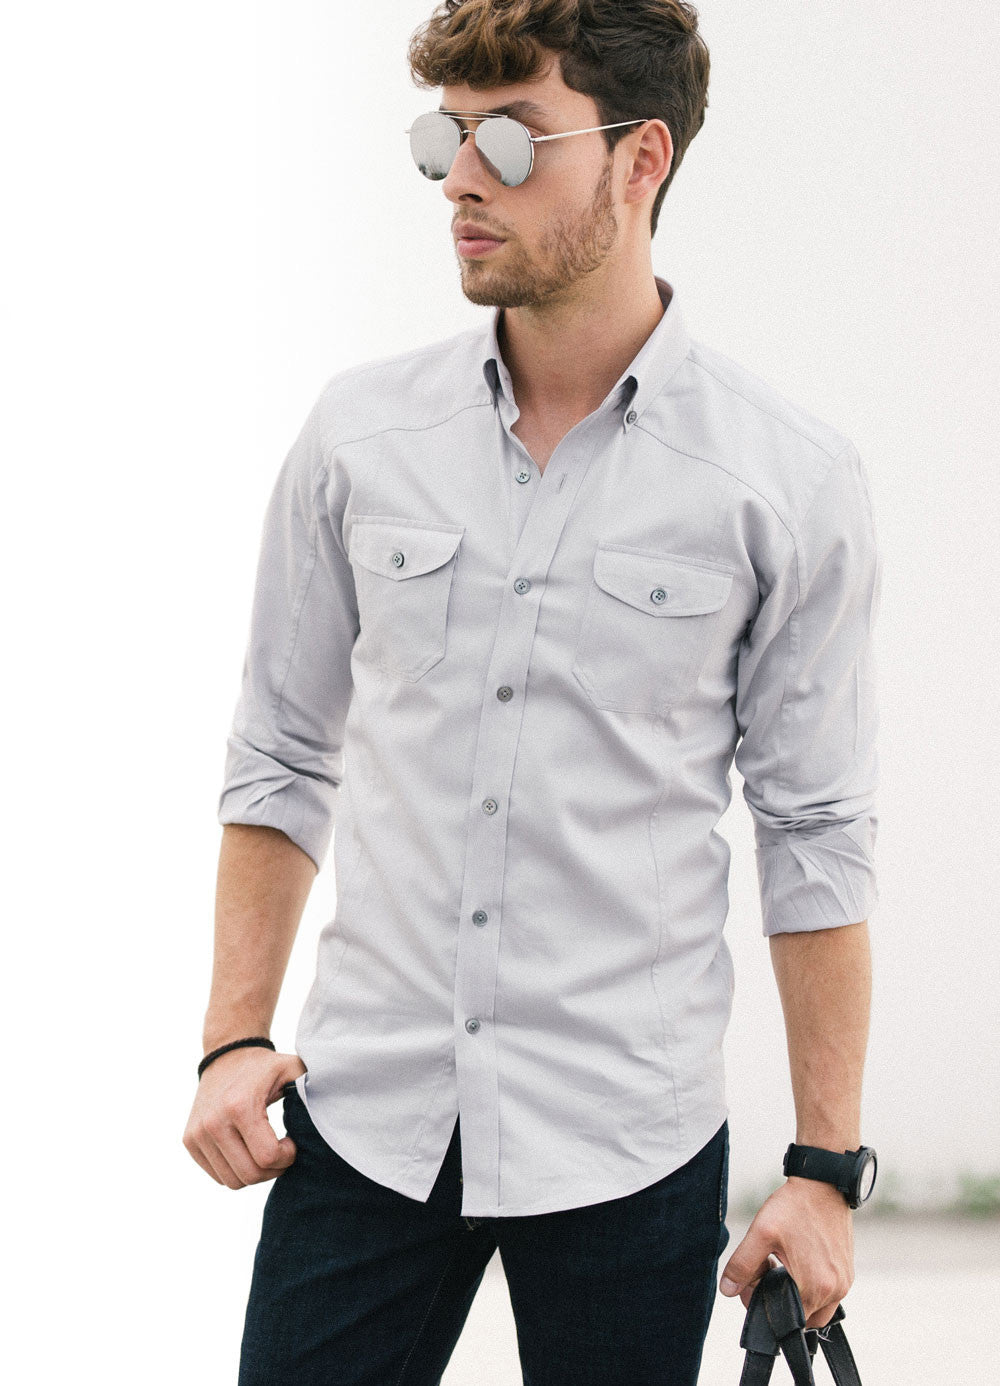 Grey Utility Shirt Rolled Sleeves